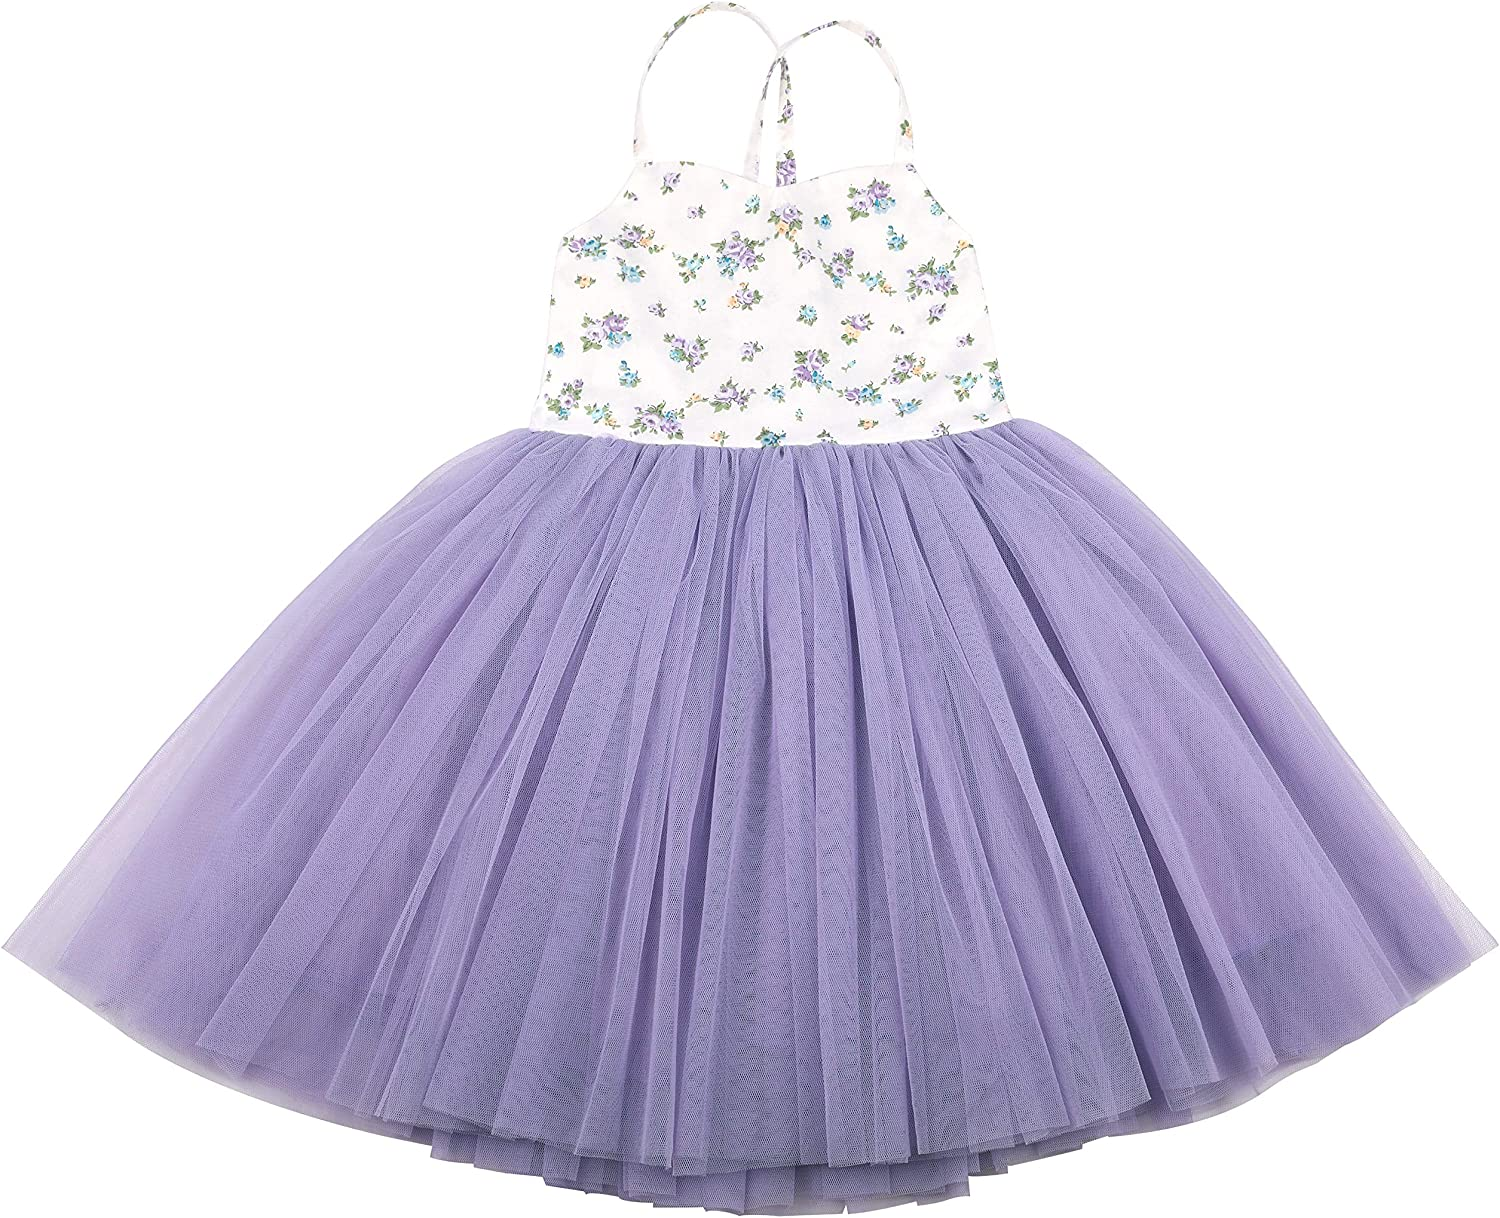 Flofallzique Tutu Flower Girls Dress Wedding Birthday Party Toddler Sundress for 1-10 Y